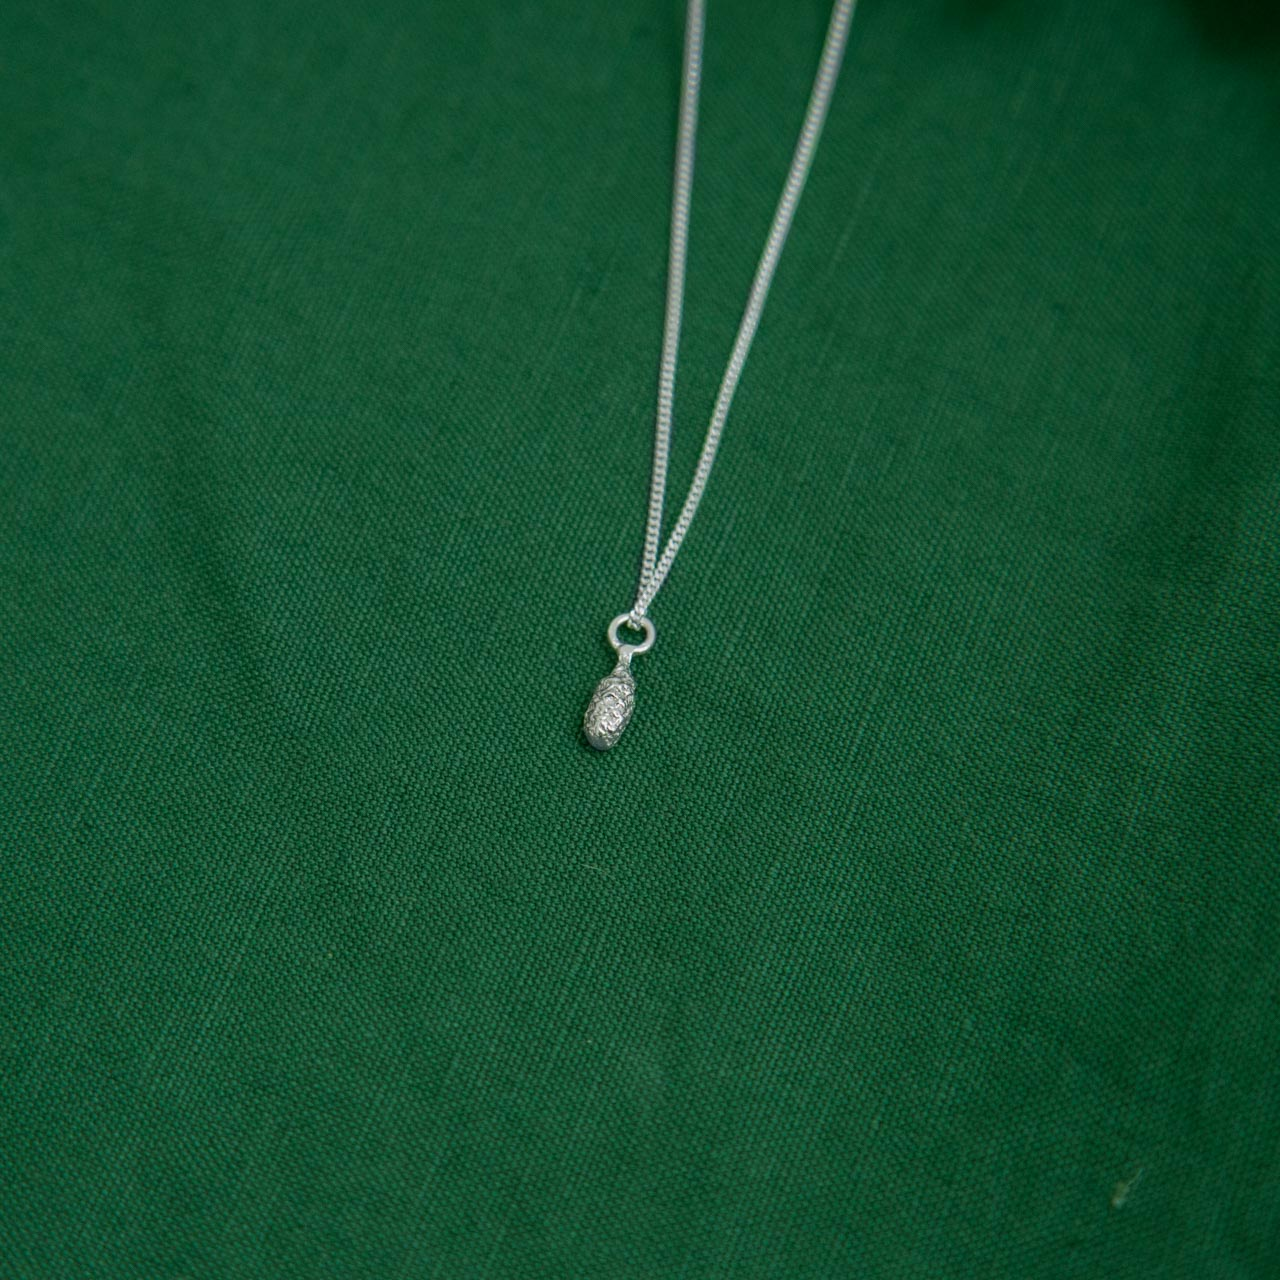 silver Spruce Drop Pendant on green cloth